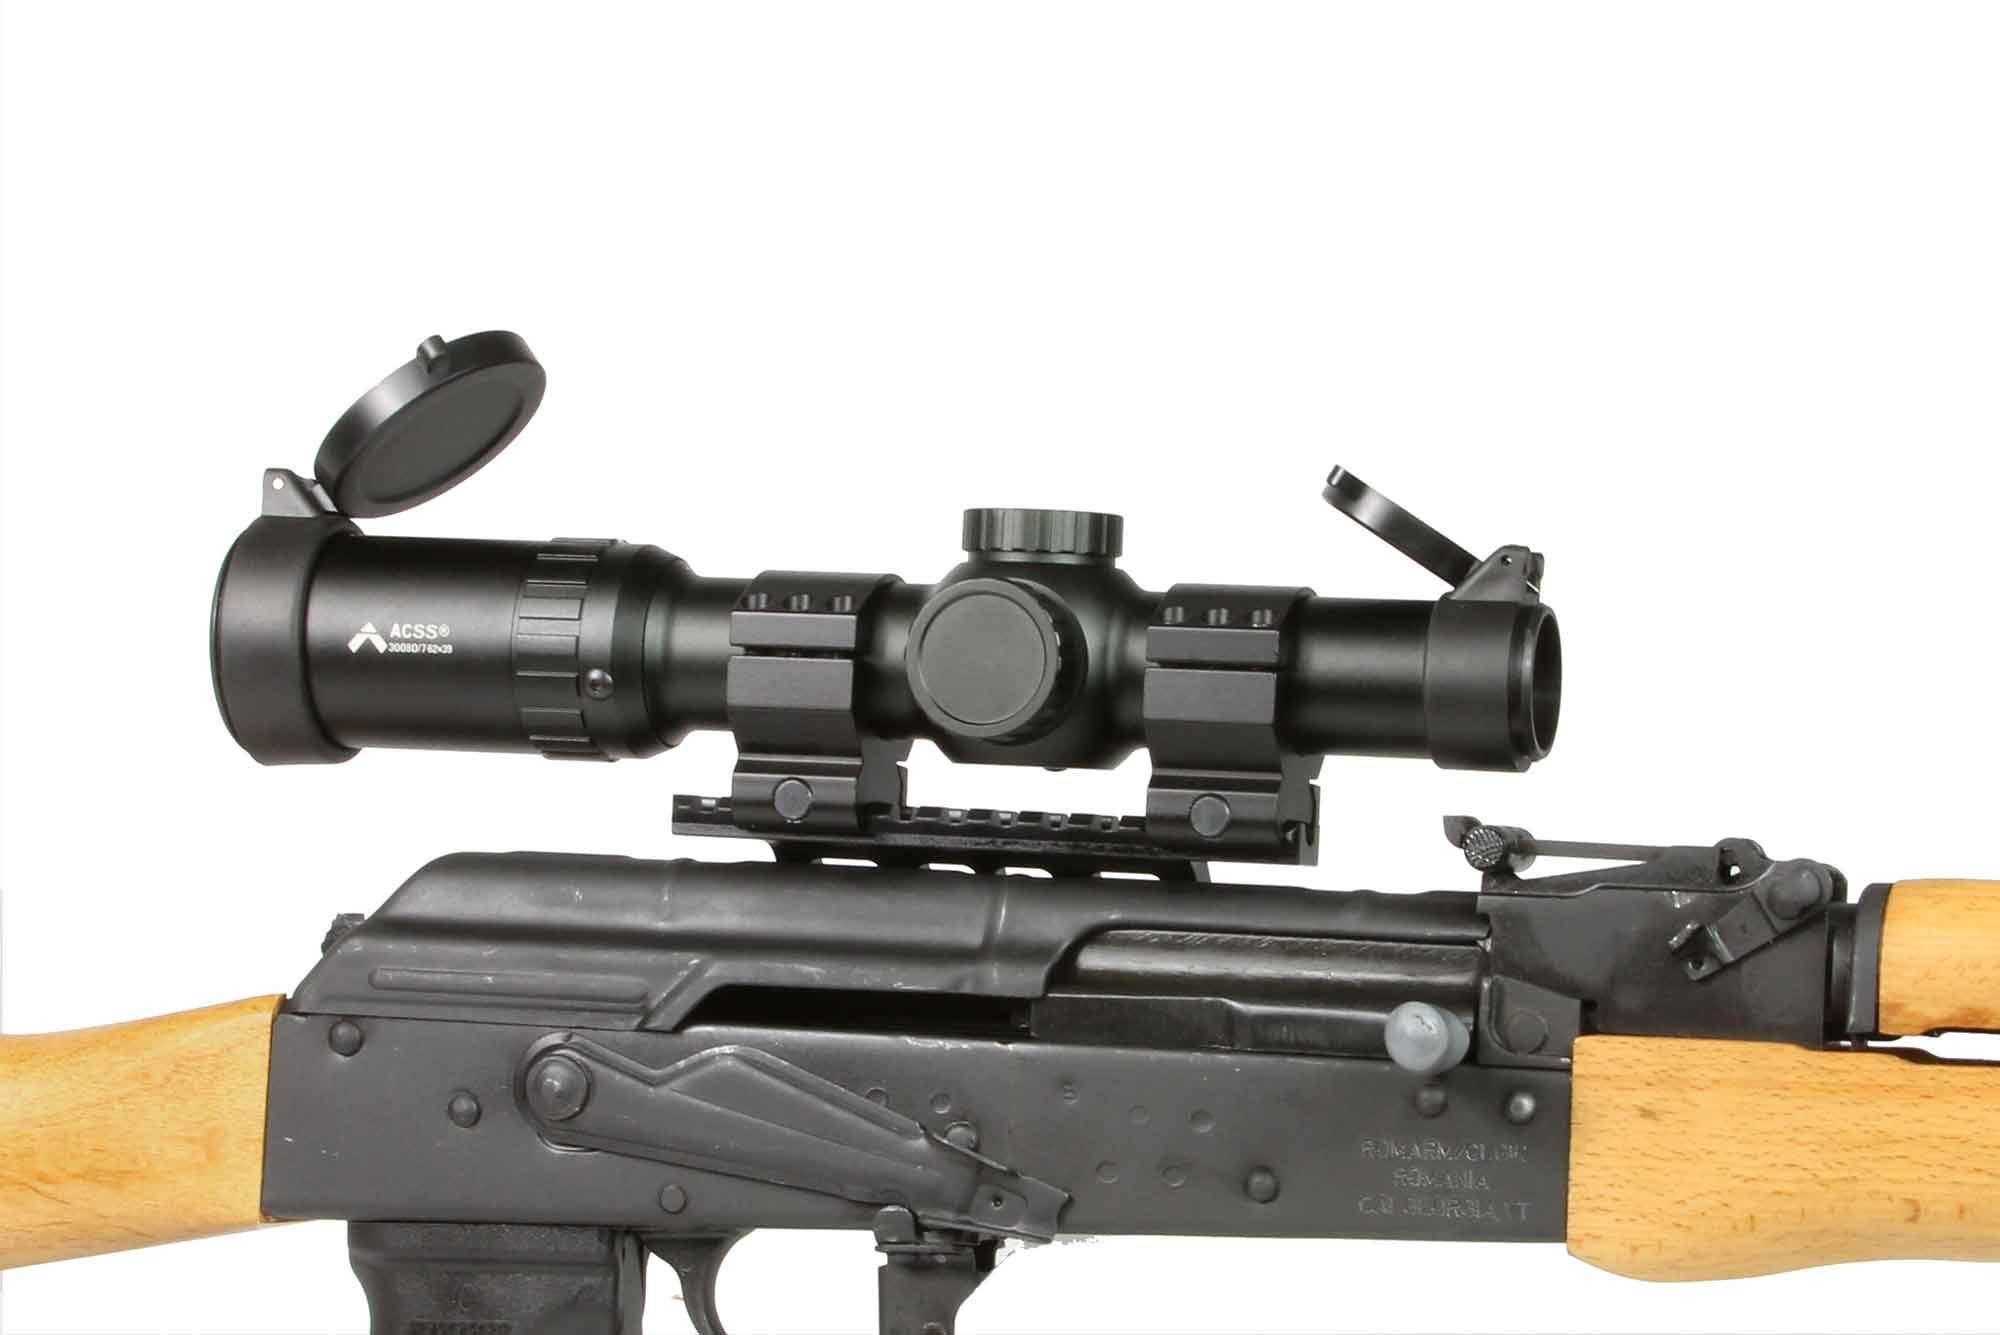 Primary Arms 1-6X24mm SFP scope w/ACSS 300BLK/ 7.62X39 Reticle